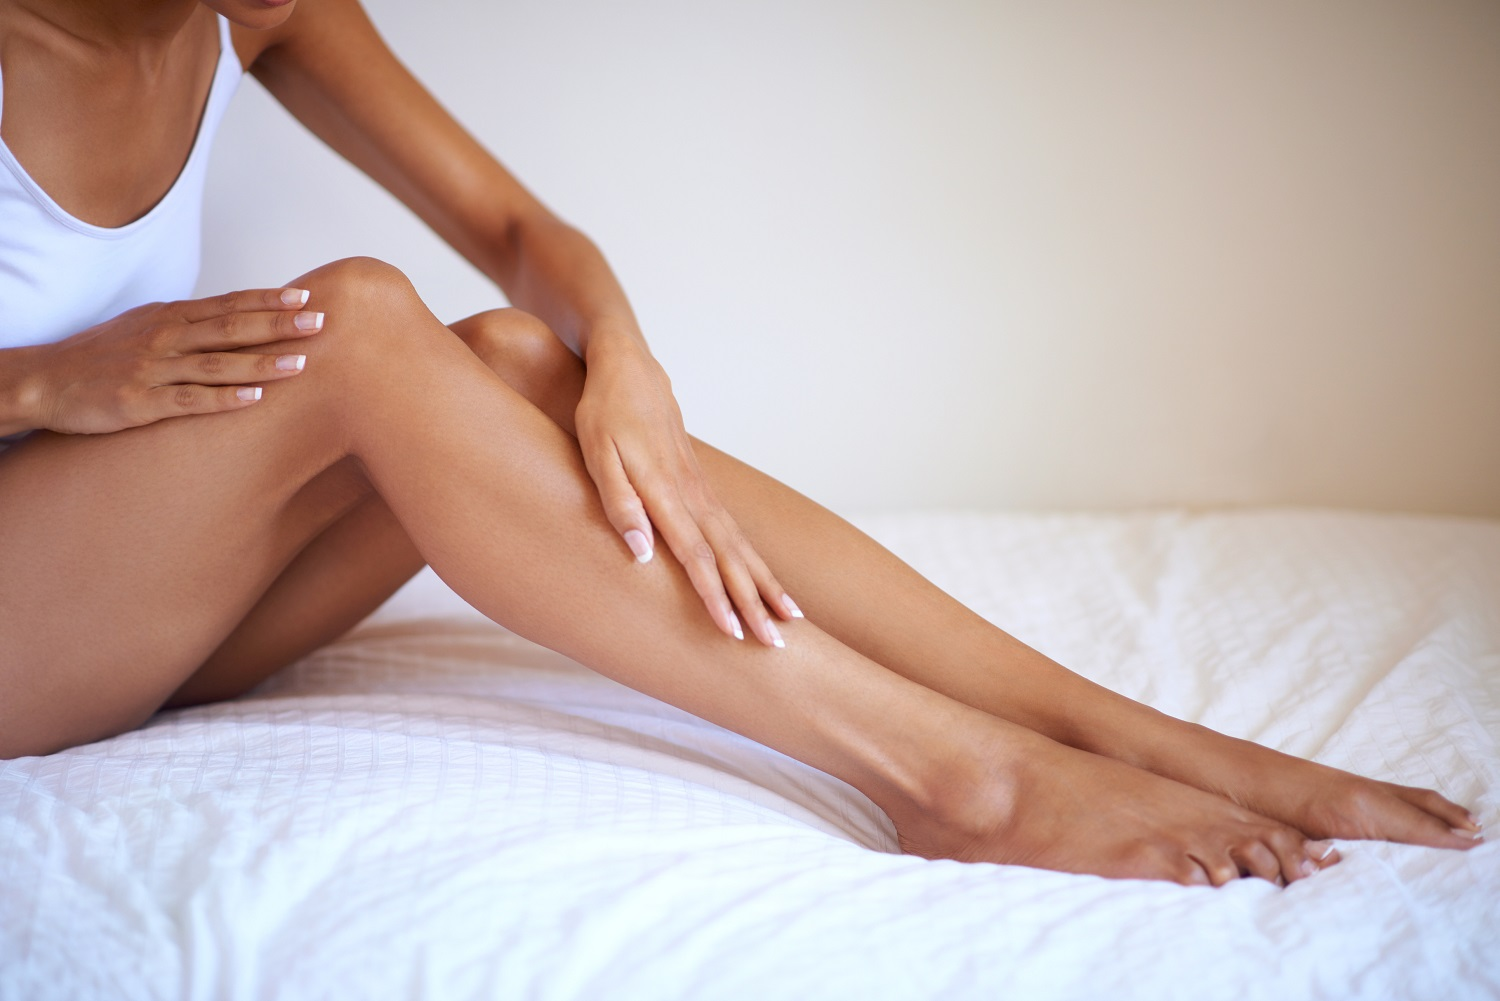 The benefits of moisturising your body